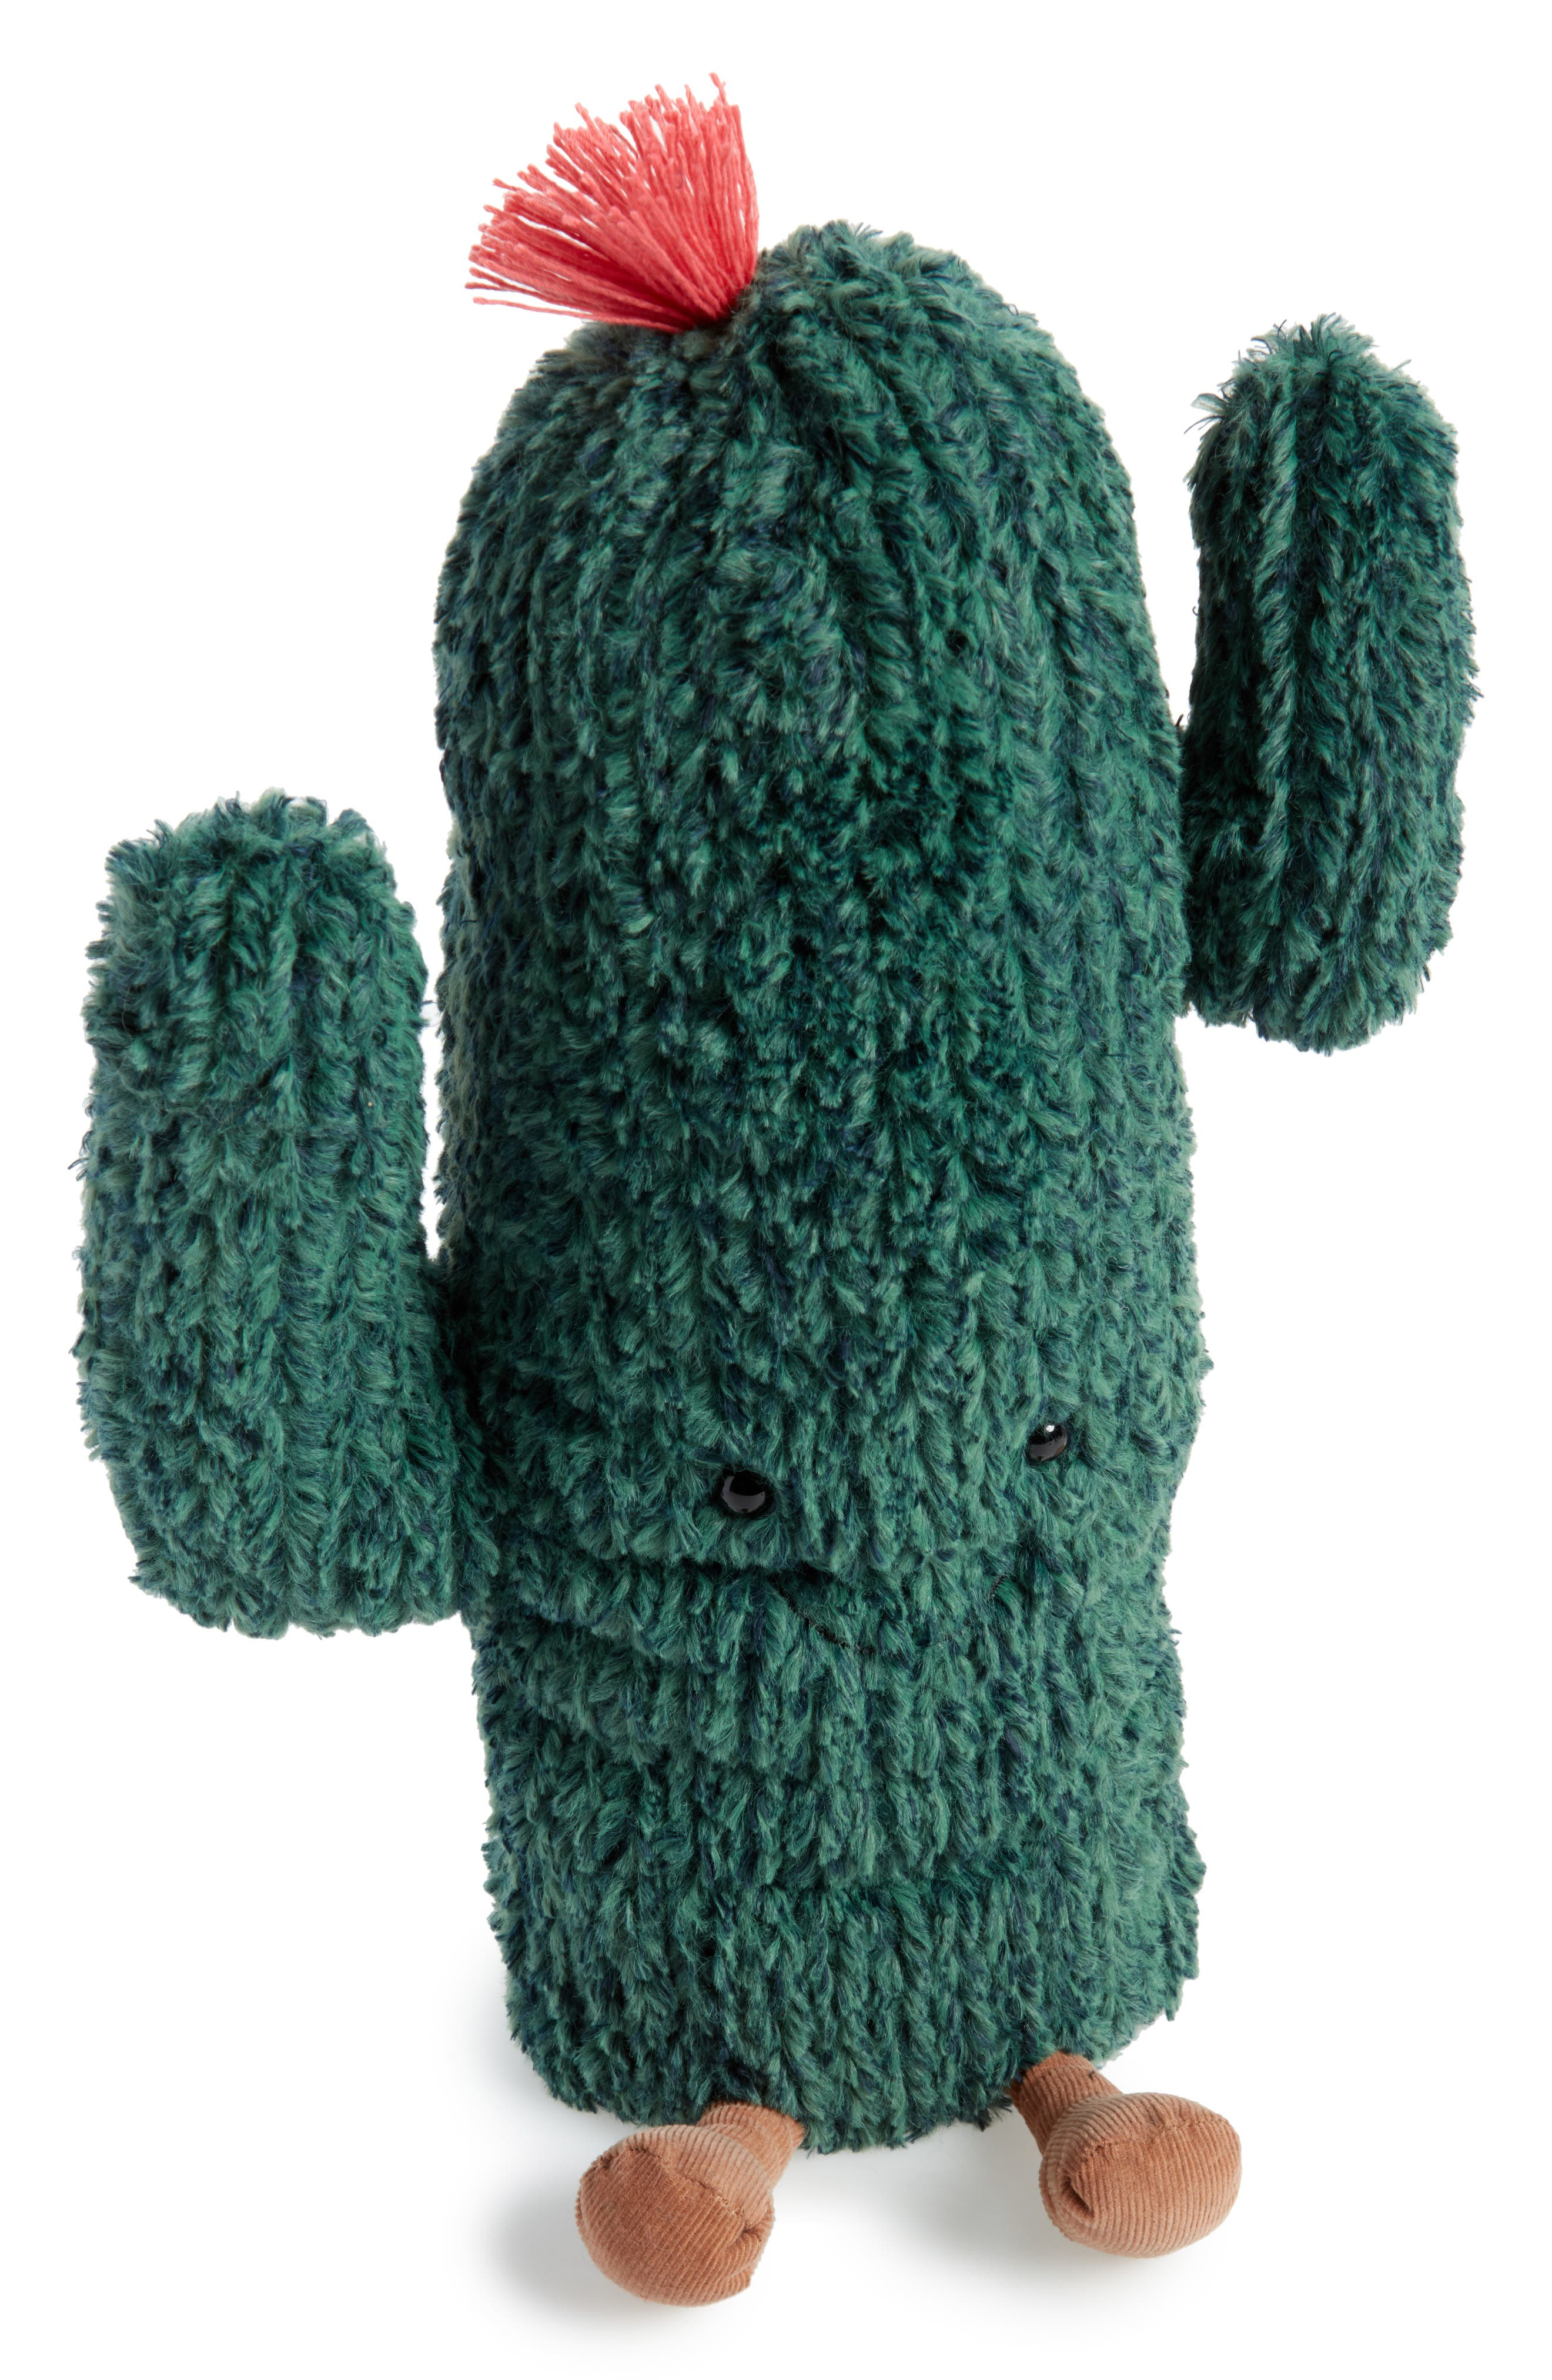 Alternate Image 1 Selected - Jellycat Amuseable Cactus Stuffed Toy